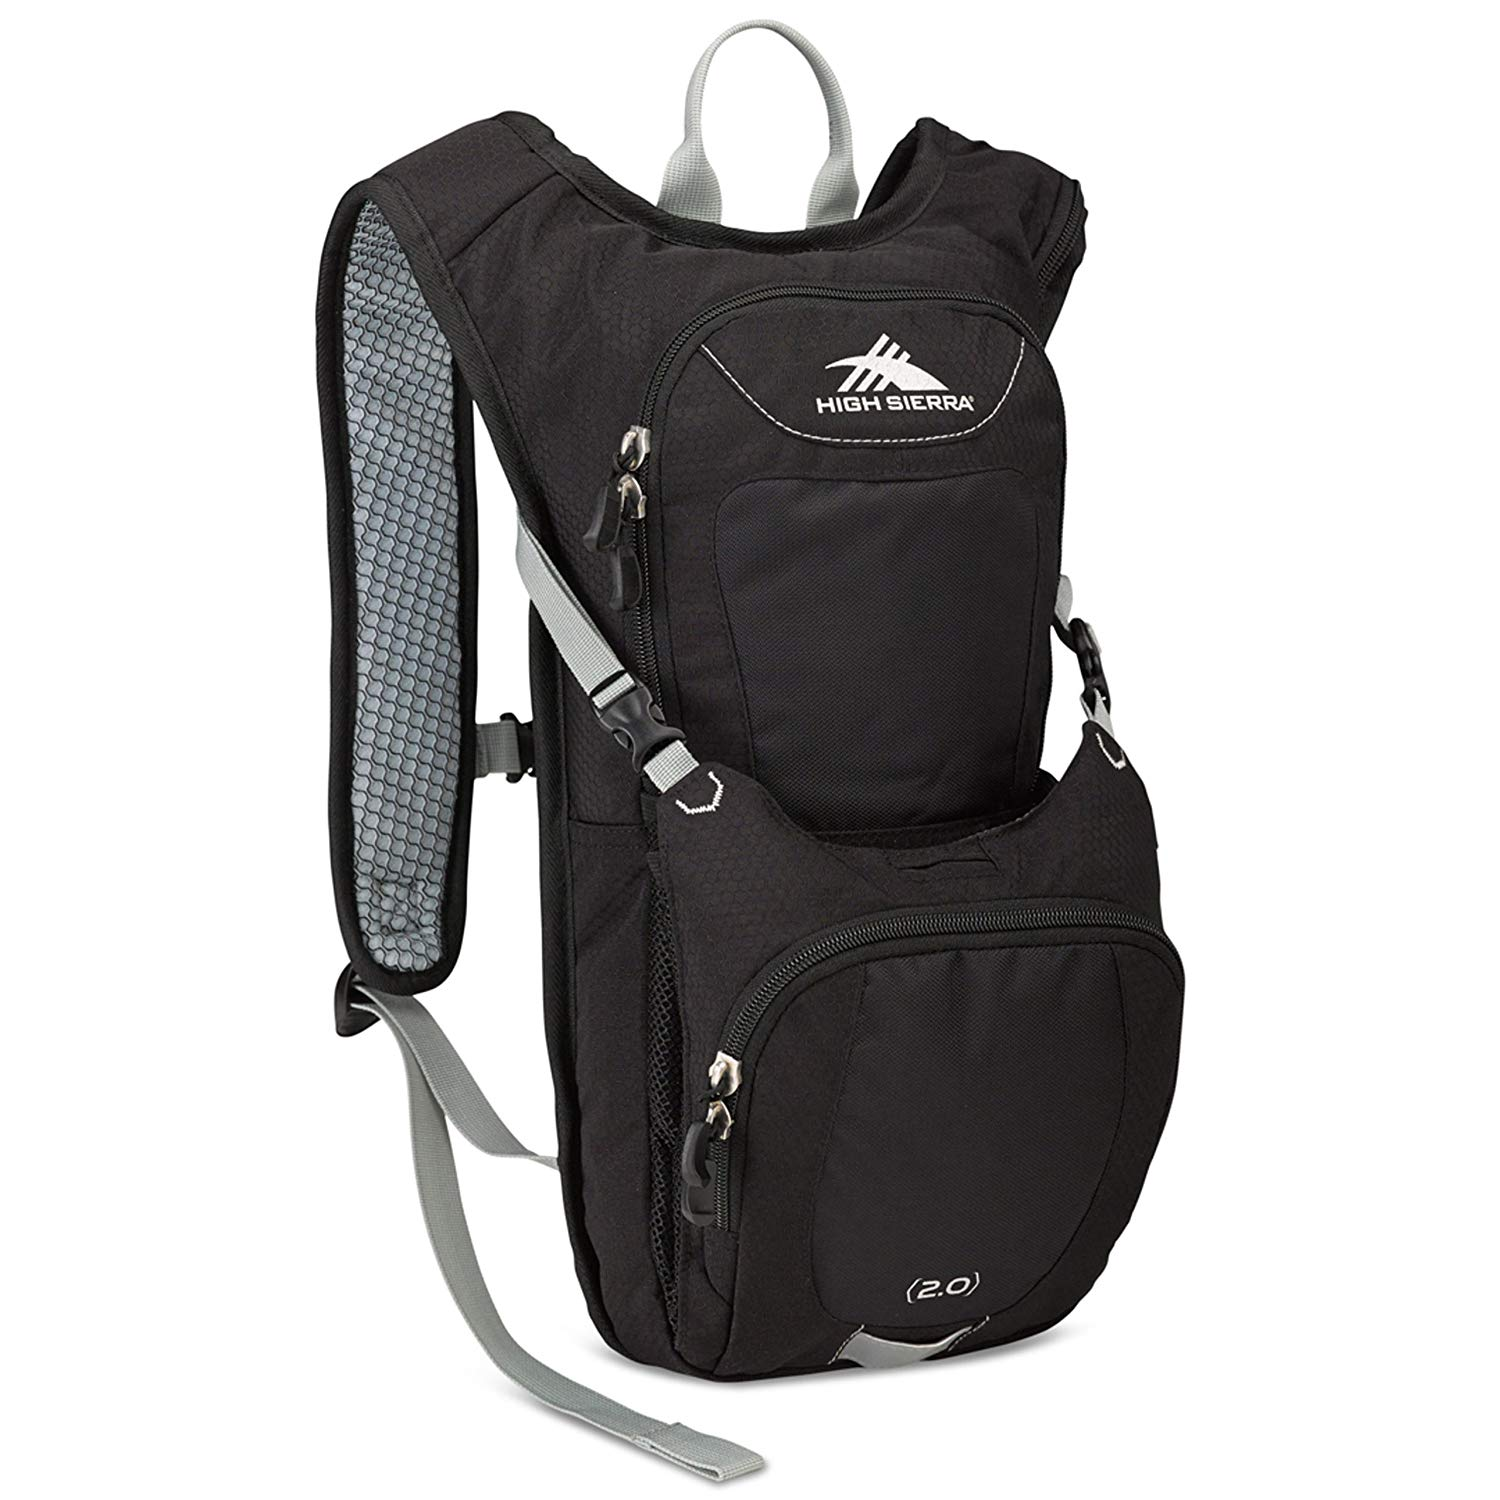 High Sierra Quickshot 70 Hydration Pack Black/Black/Silver